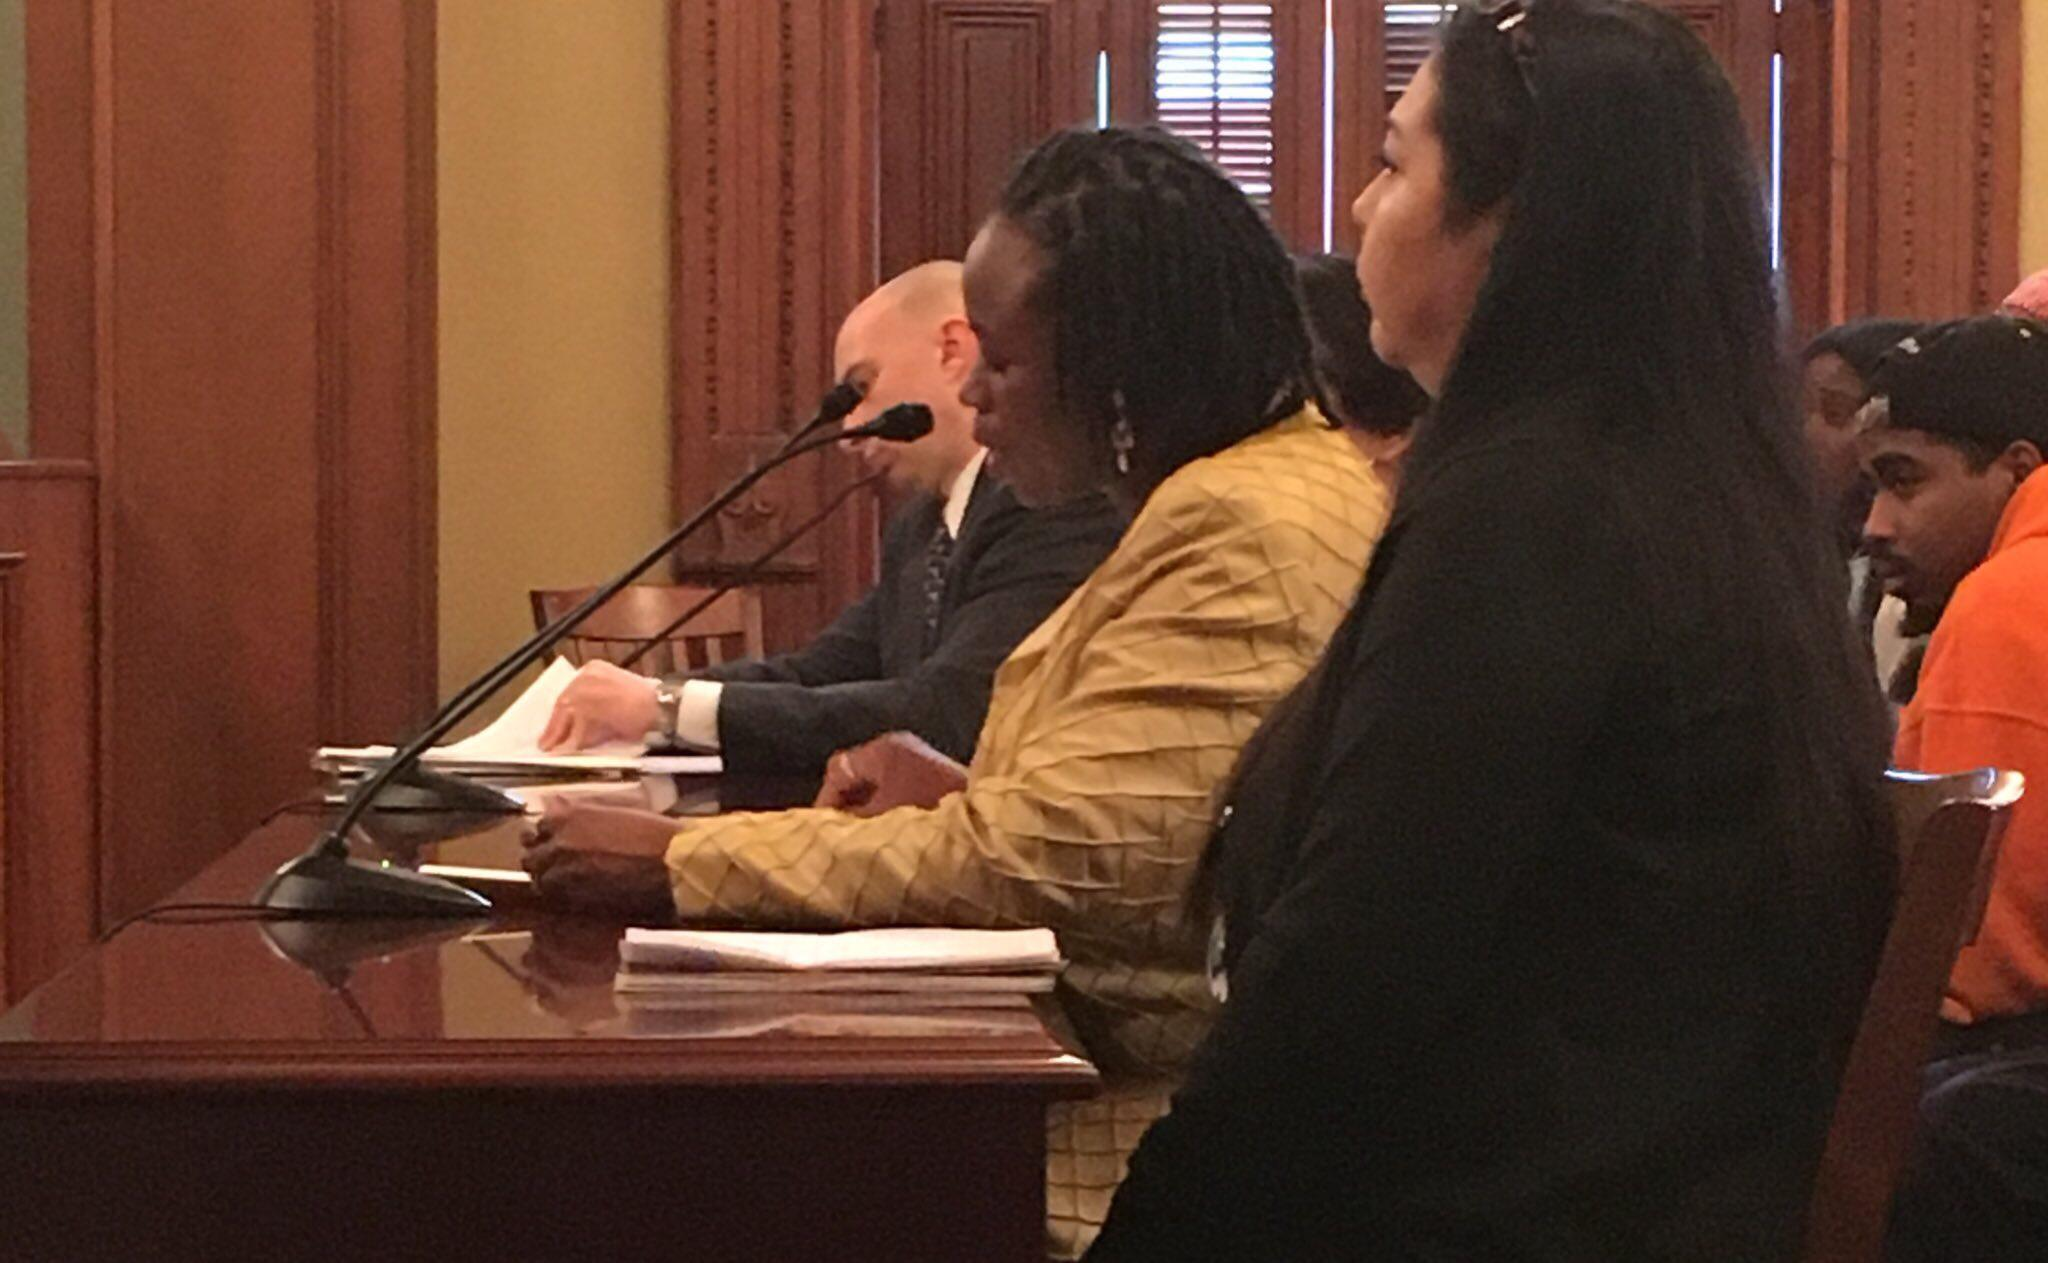 illinois issues the trouble temp work npr illinois carol ammons in yellow during a labor committee hearing